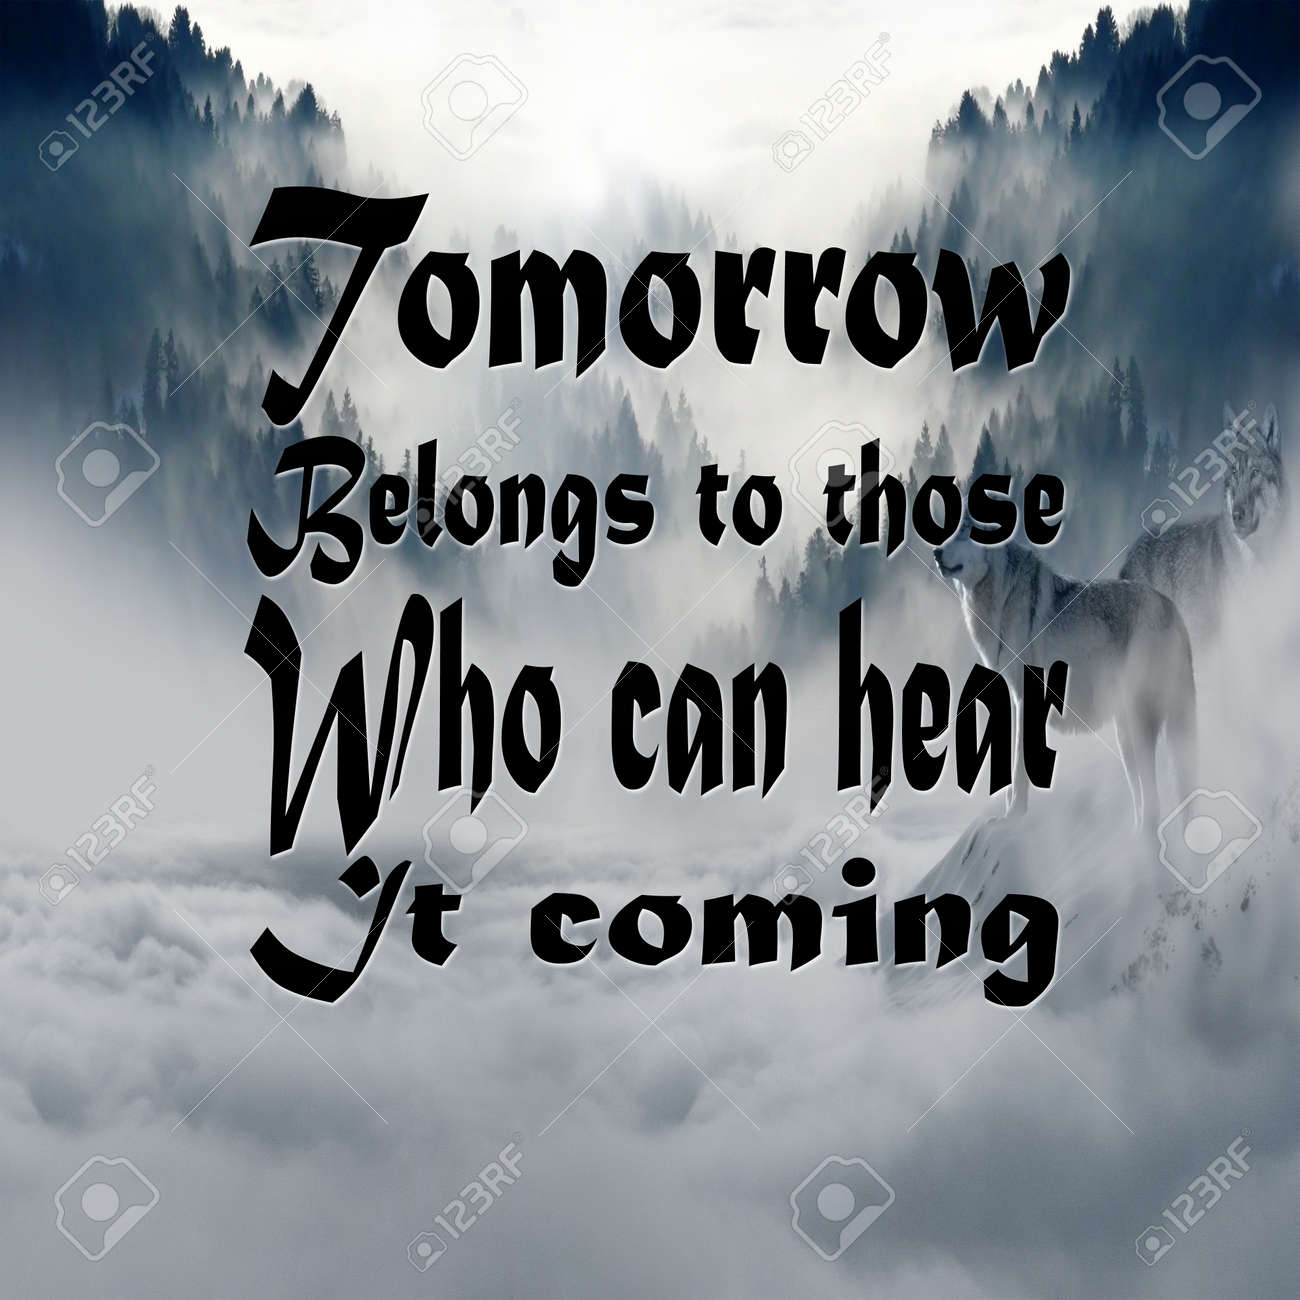 Inspirational Quotes Tomorrow Belongs To Those Who Can Hear It